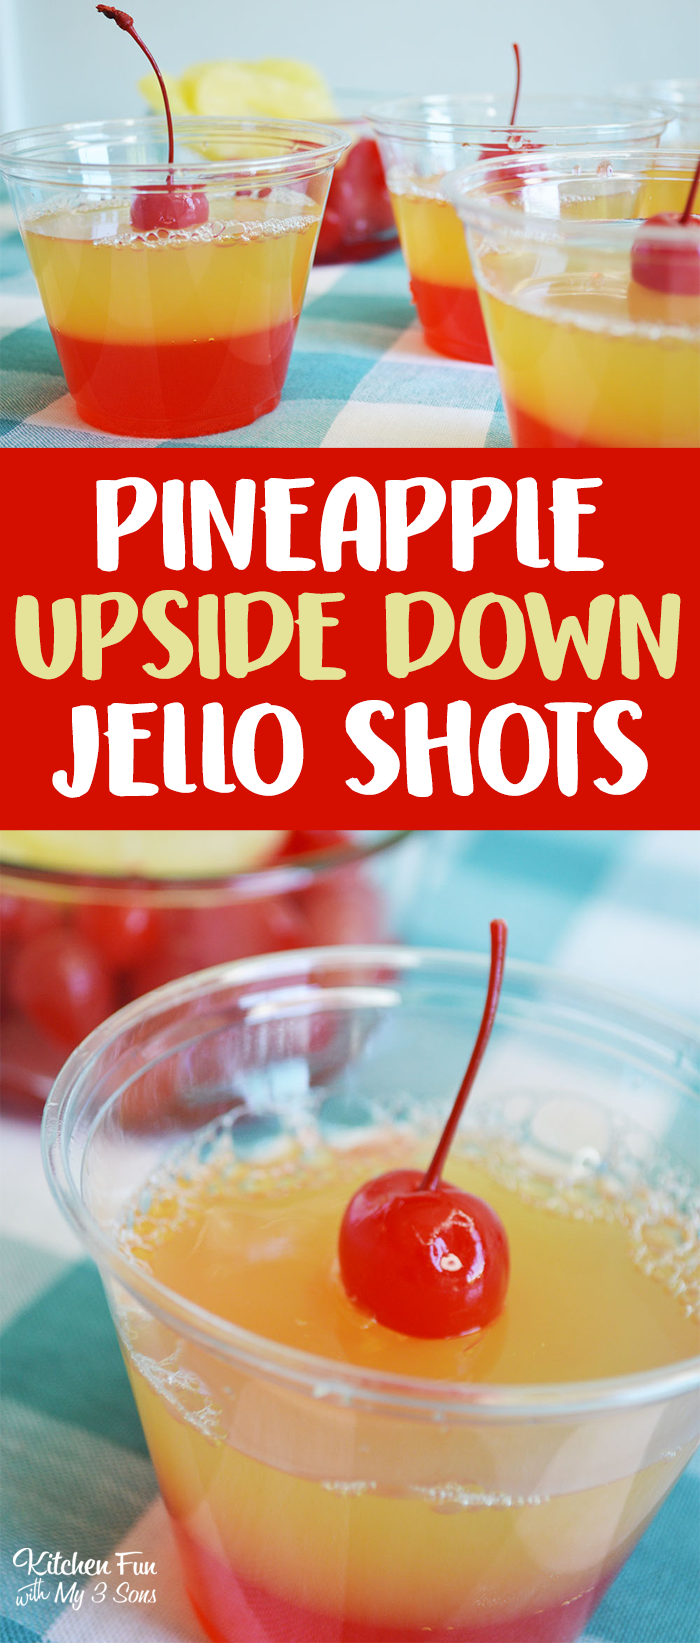 Pineapple Upside Down Jello Shots